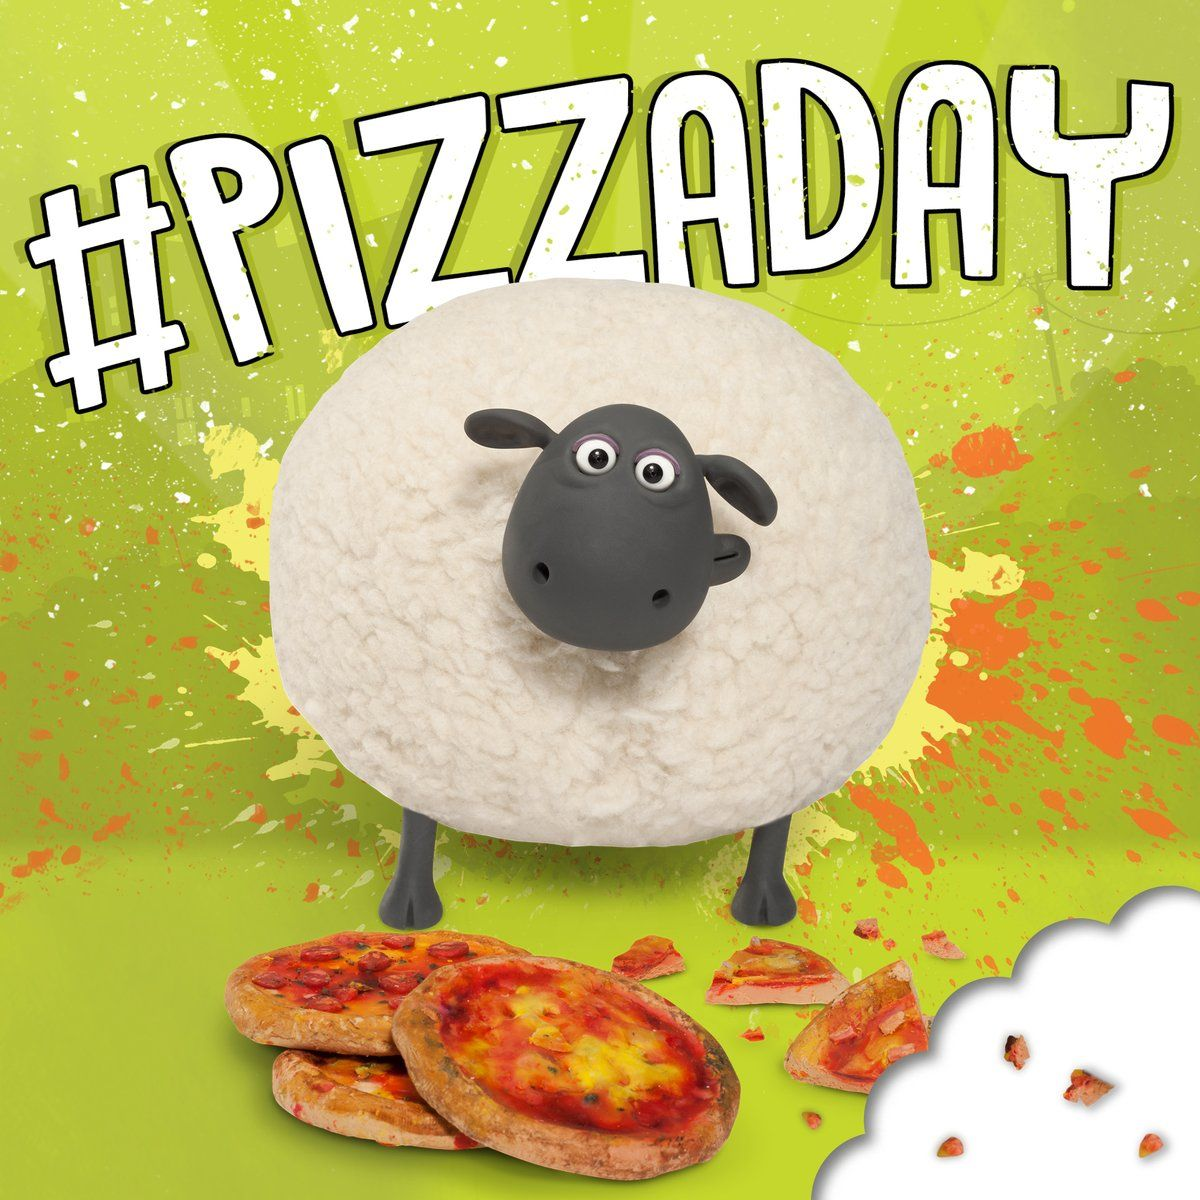 NationalPizzaDay hashtag on Twitter Pizza day, Hashtags